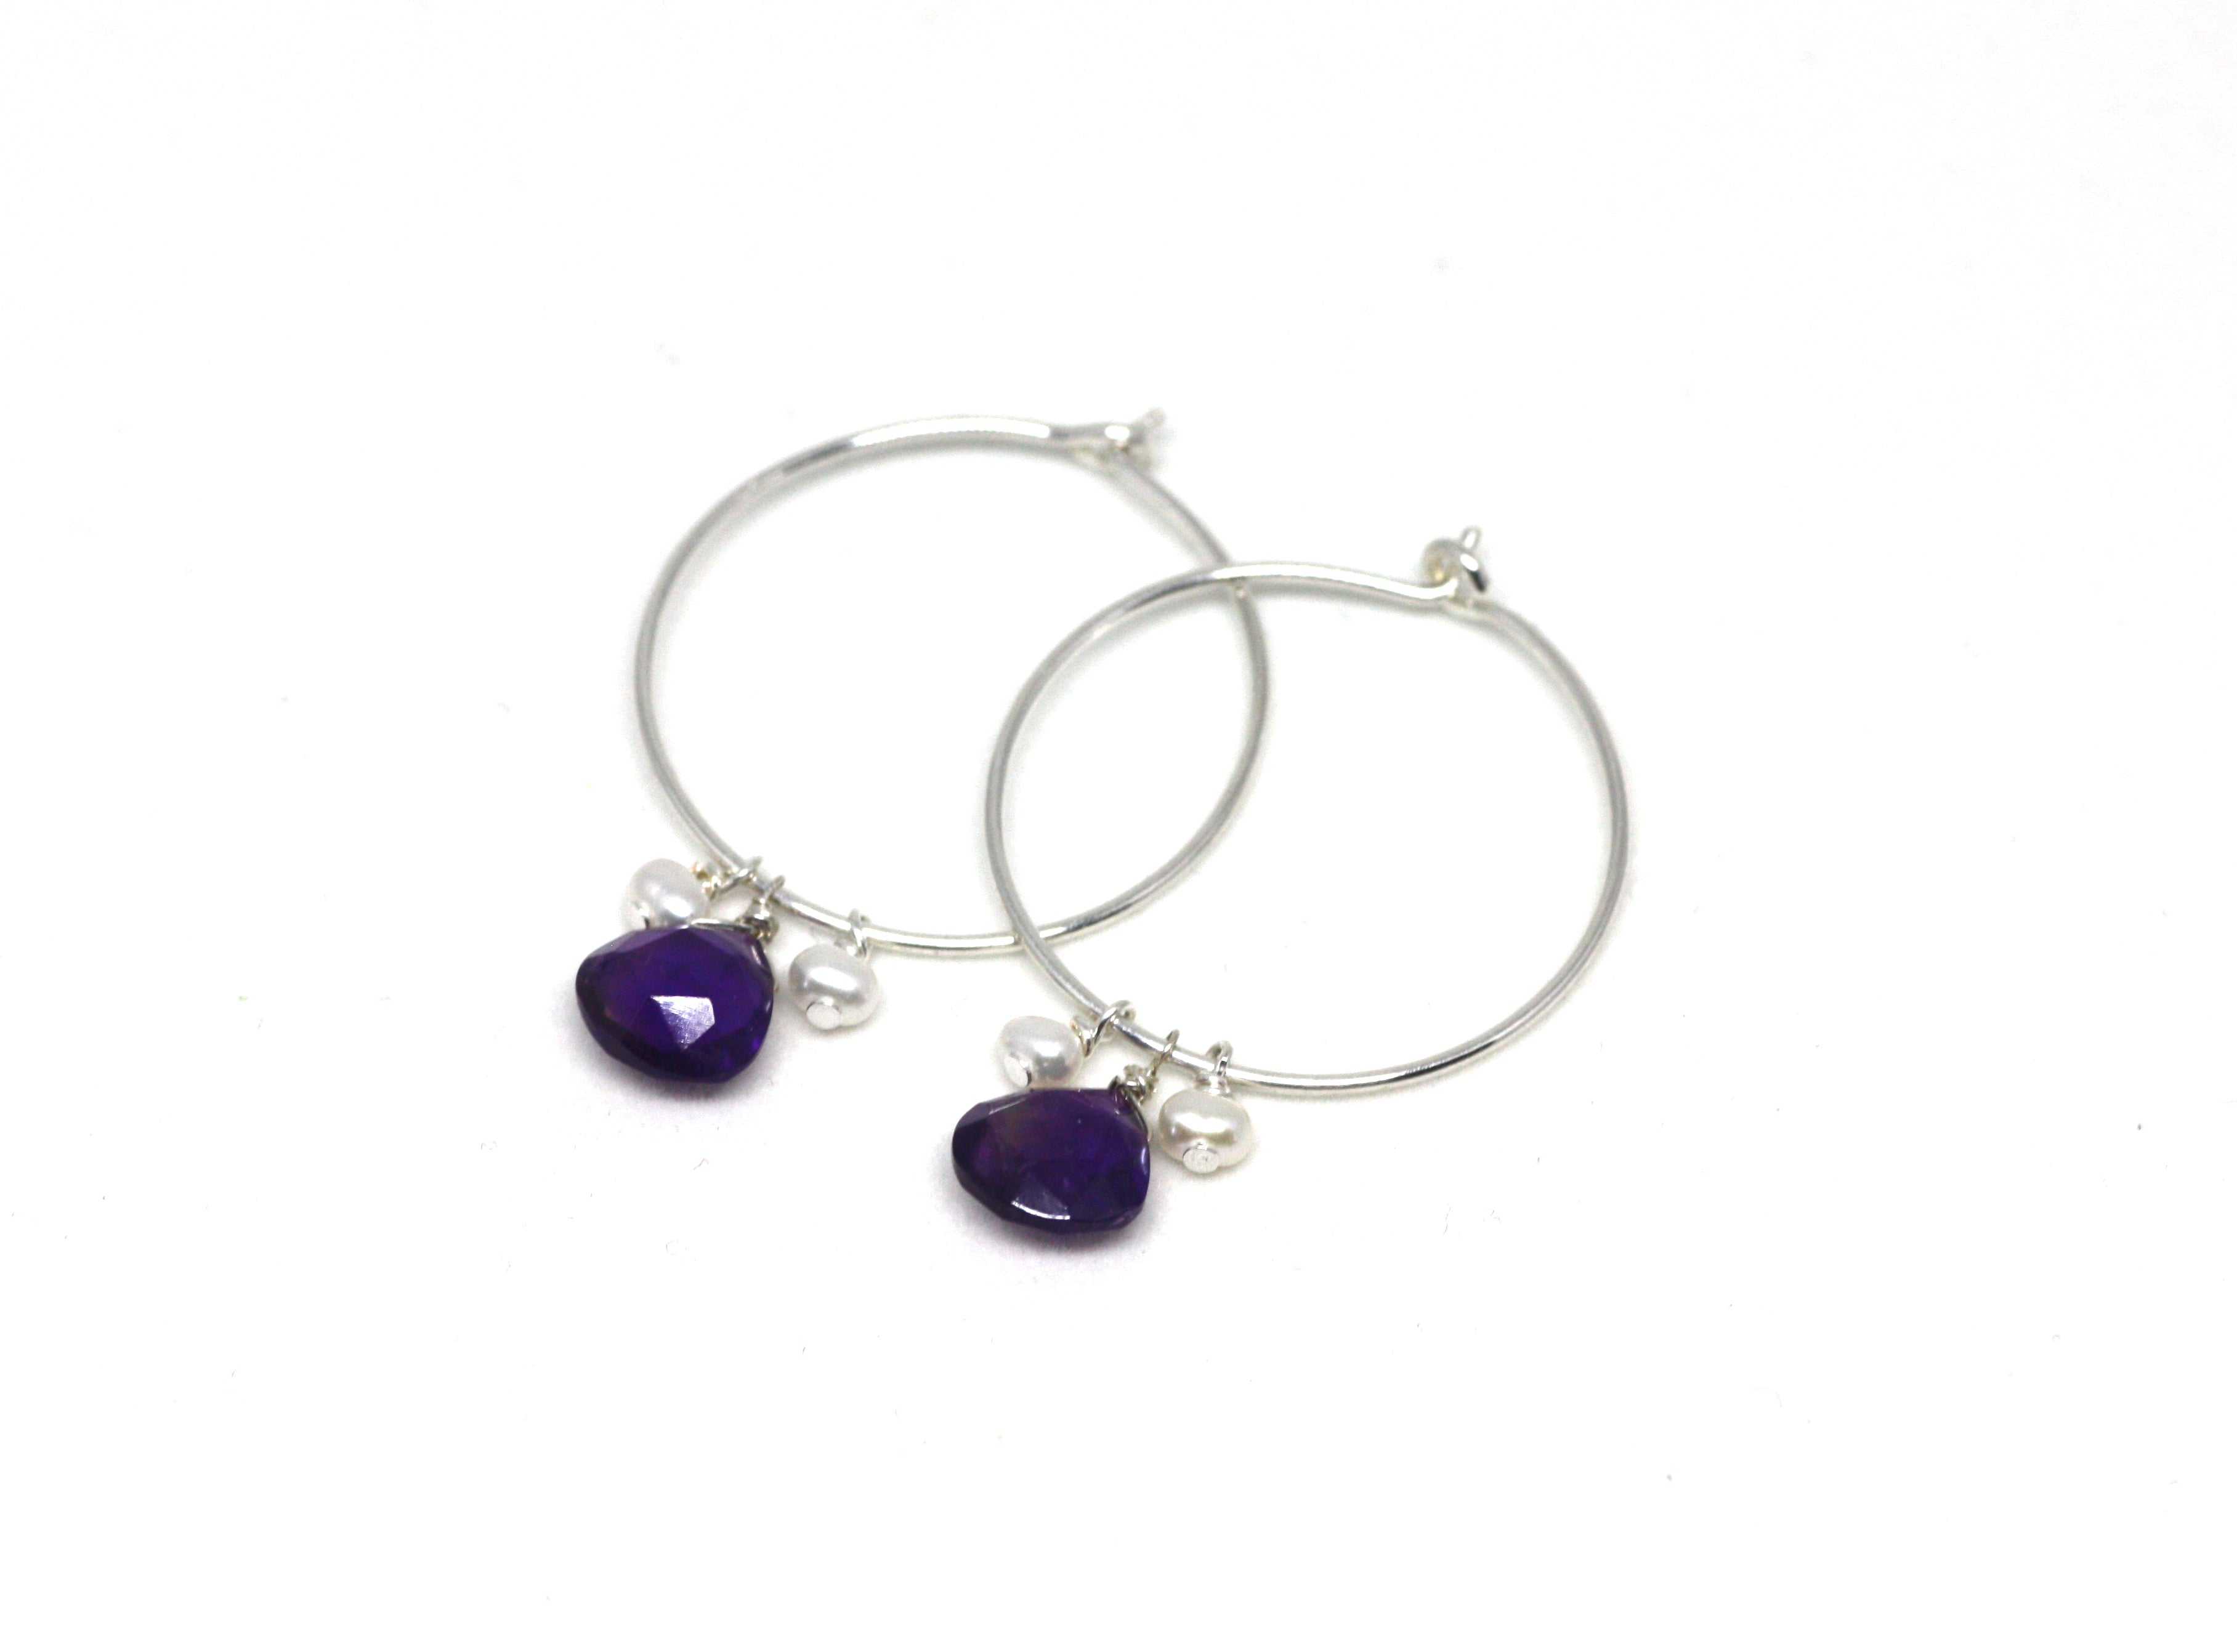 Sterling Silver and Teardrop Gemstone Hoop Earrings CLEARANCE